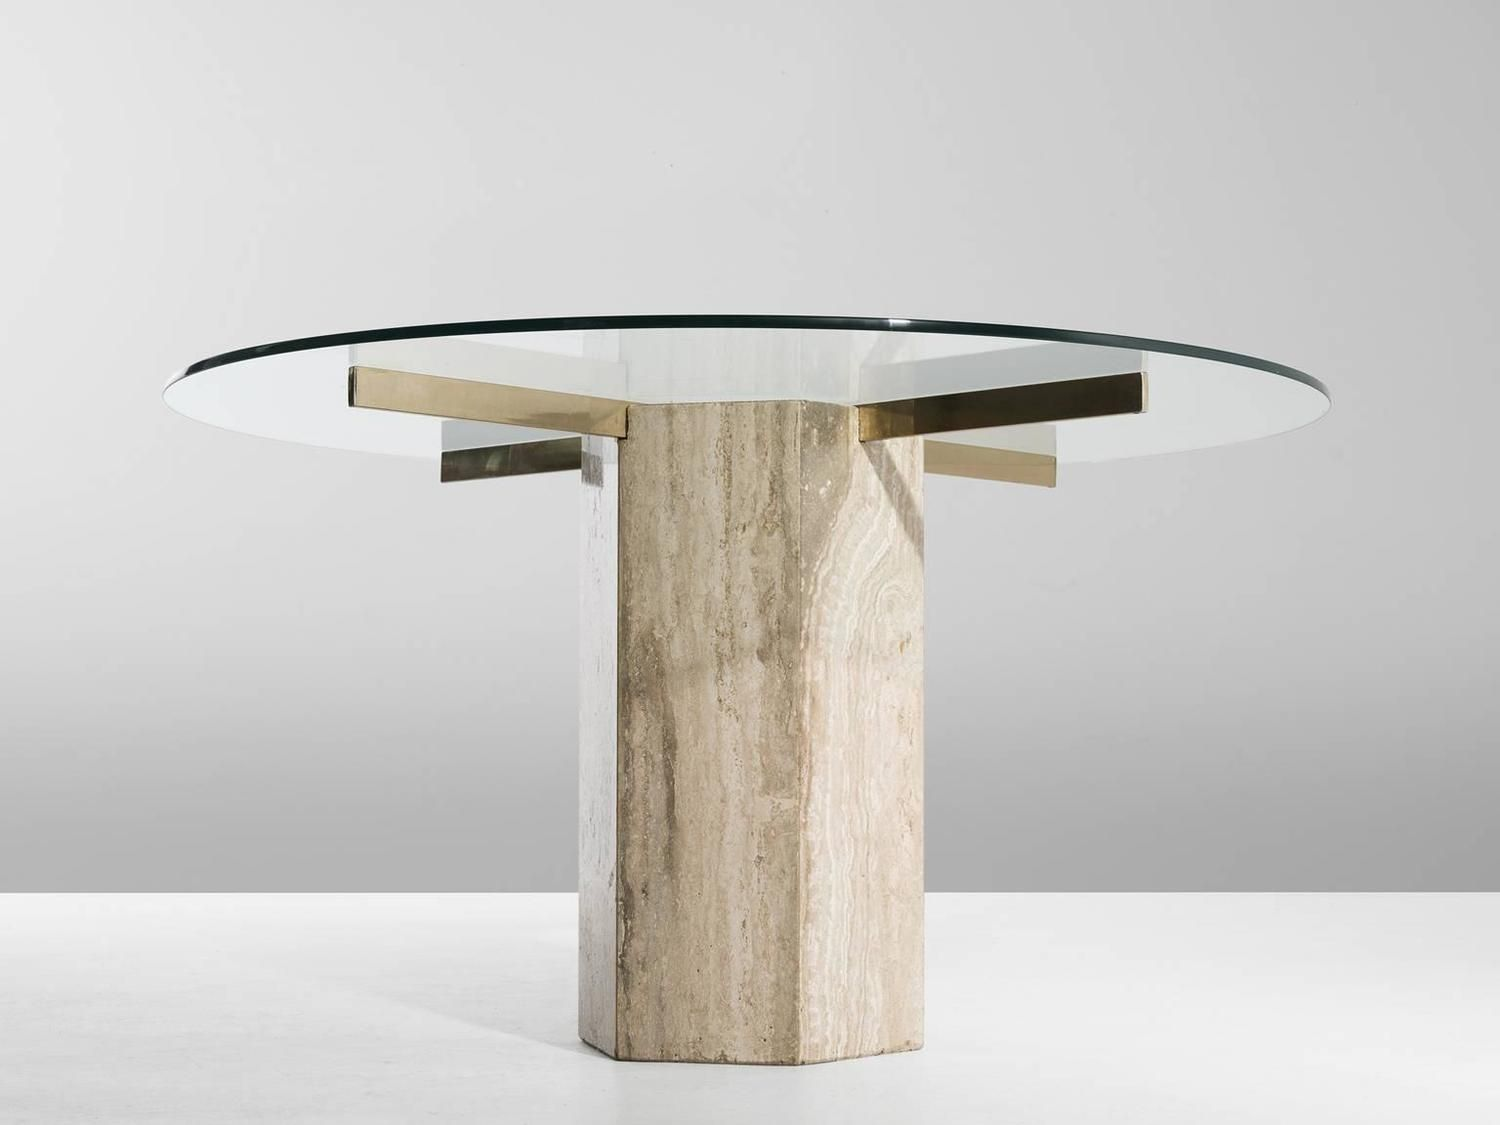 Travertine dining room table - Italian Travertine And Brass Round Dining Table